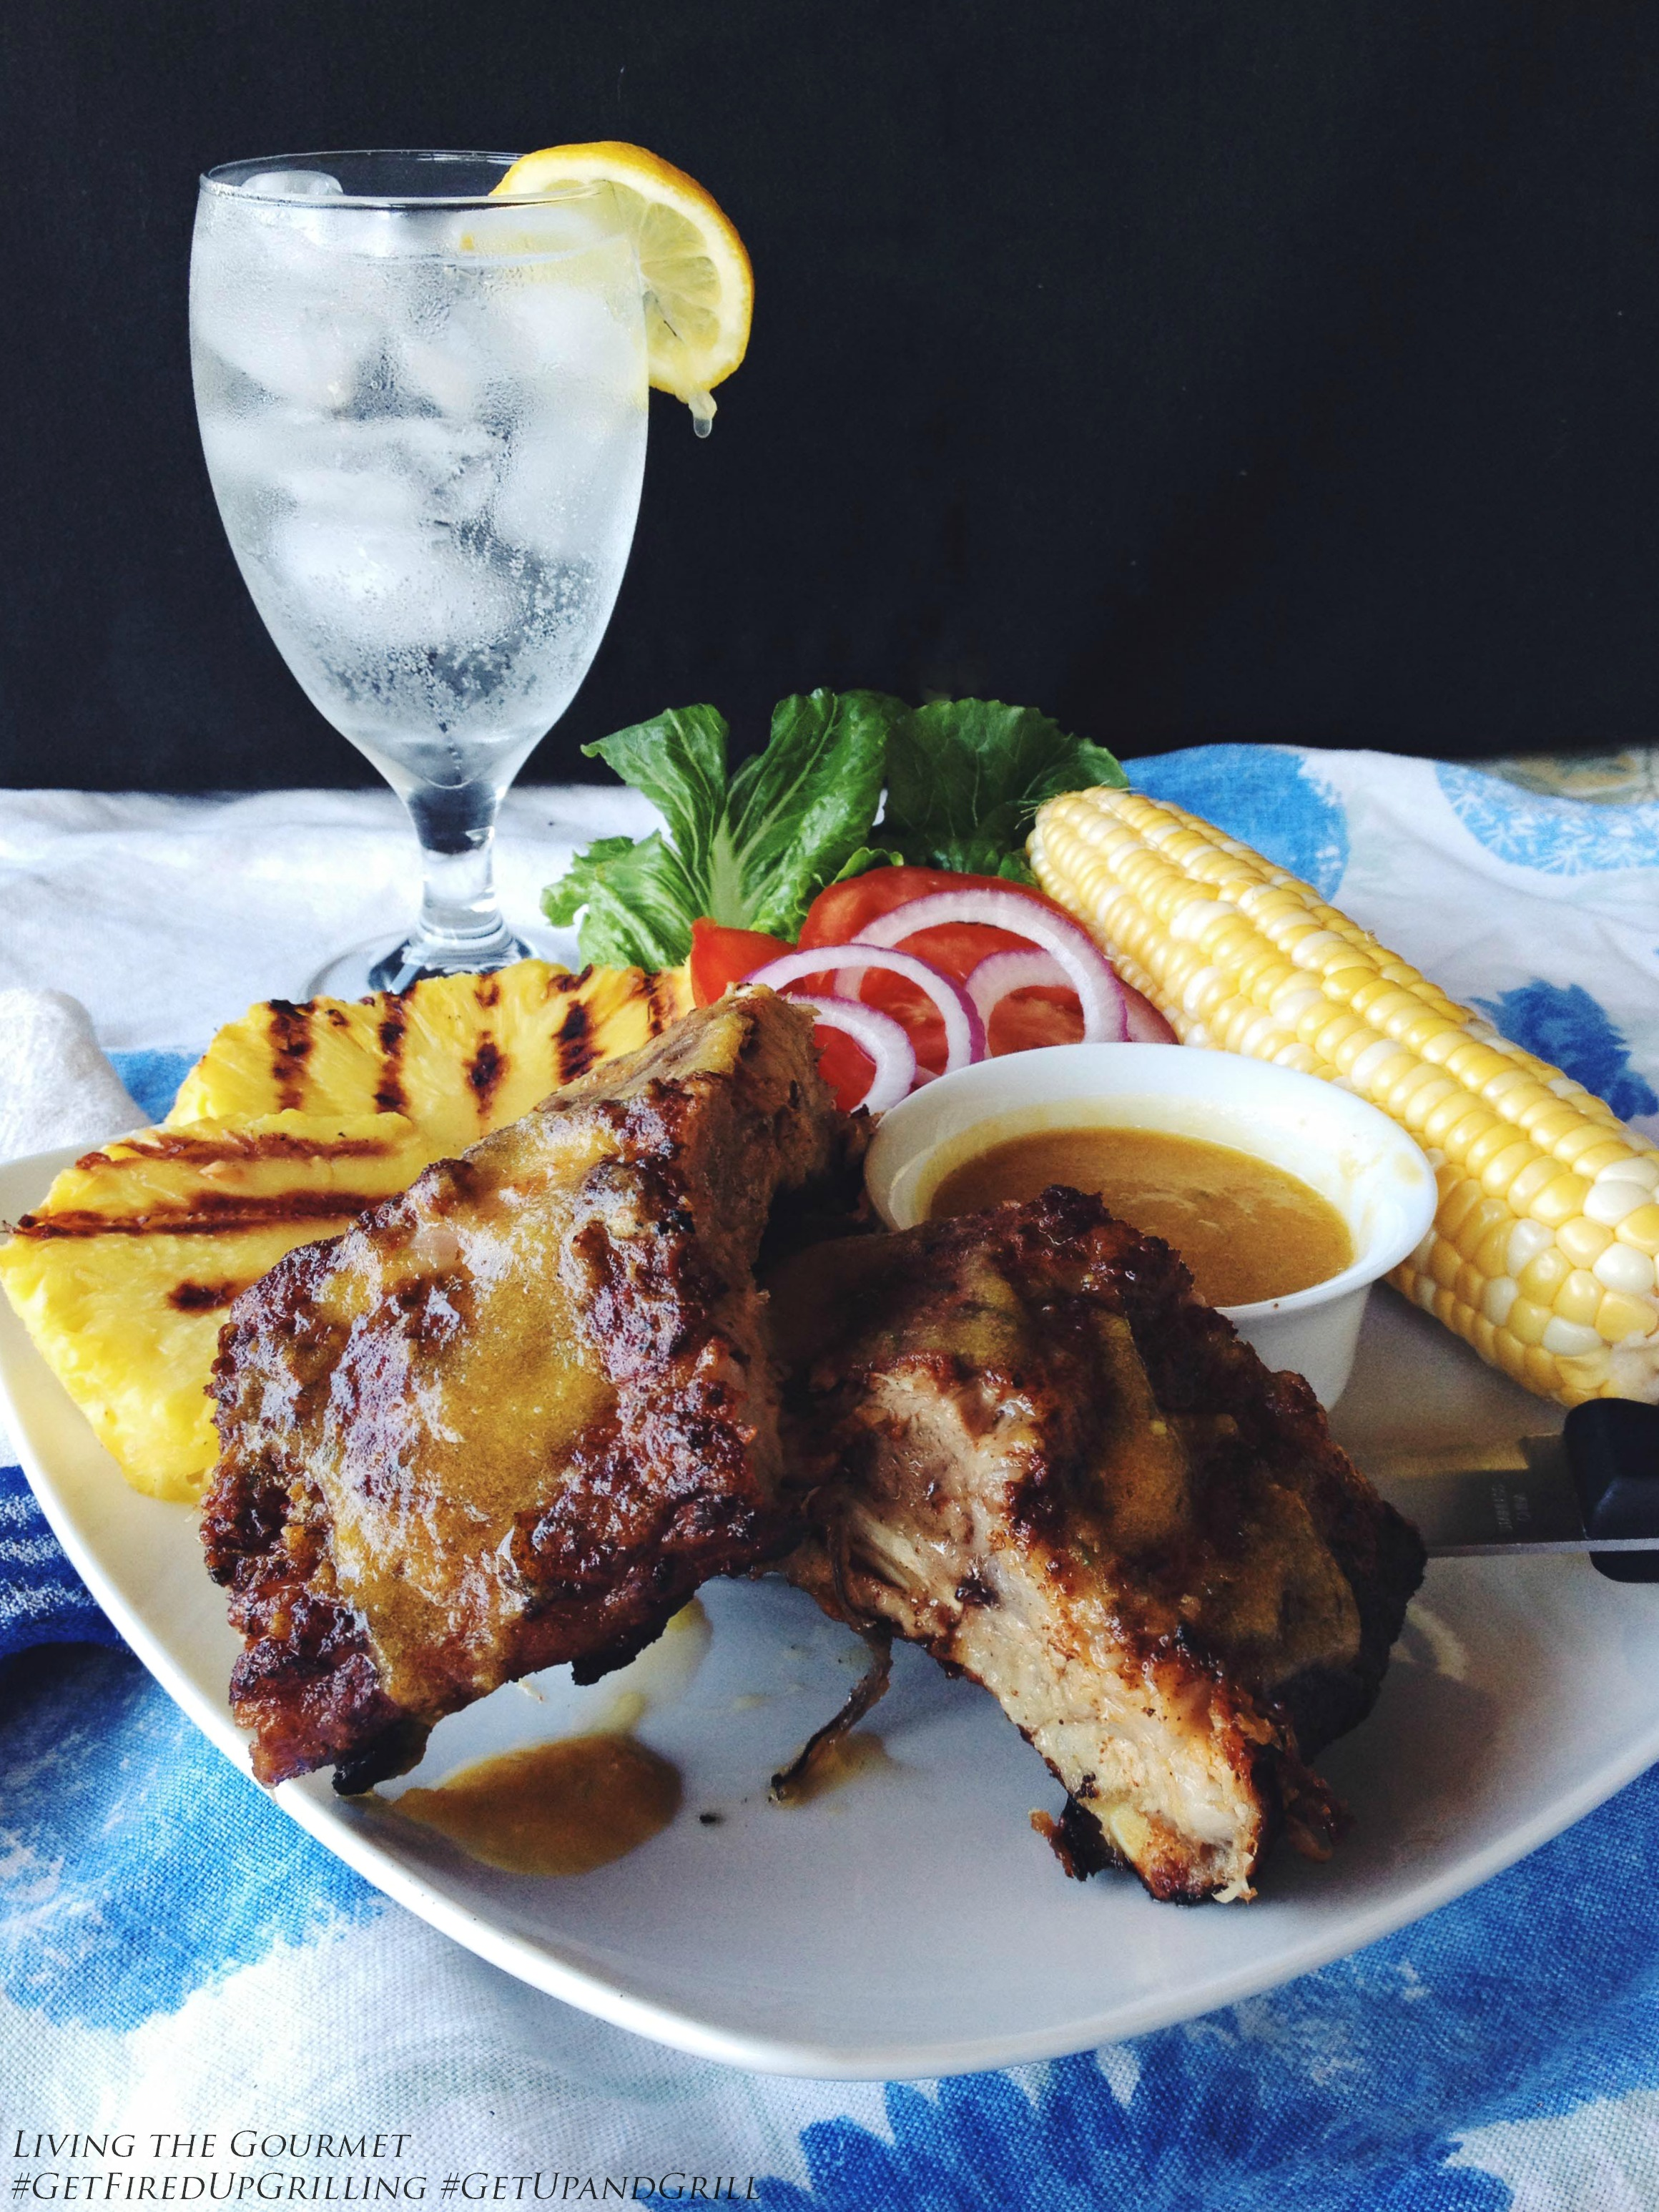 Living the Gourmet: SmithField Baby Back Ribs w/ Brown Sugar Rub & Pineapple Sauce | #GetFiredUpGrilling #GetUpandGrill #WeaveMade #ad